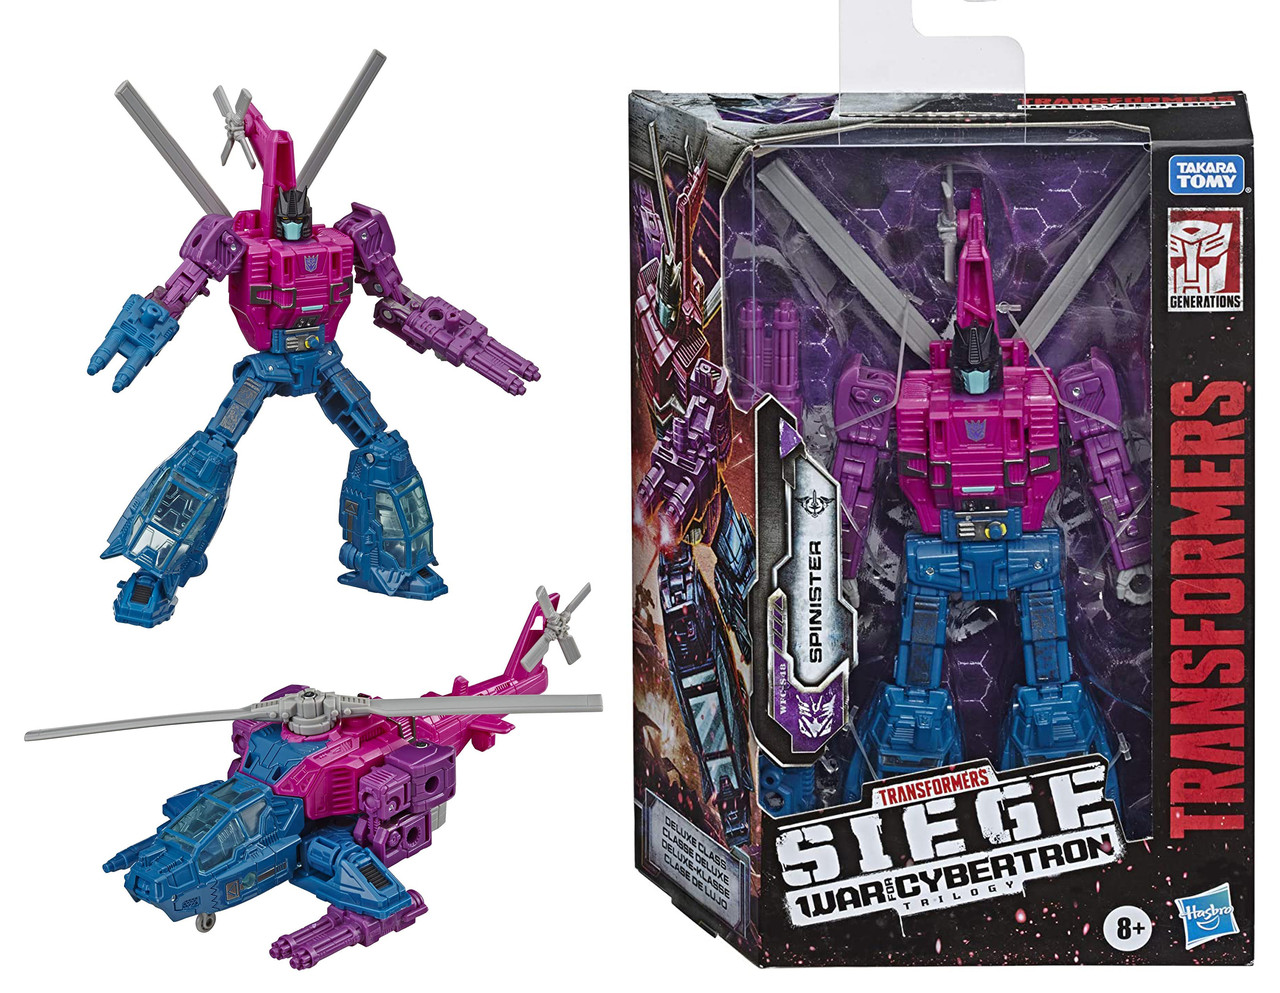 Фигурка Трансформер Спинистер Spinister Оригинал Transformers Generations War for Cybertron Deluxe Wfc-S48